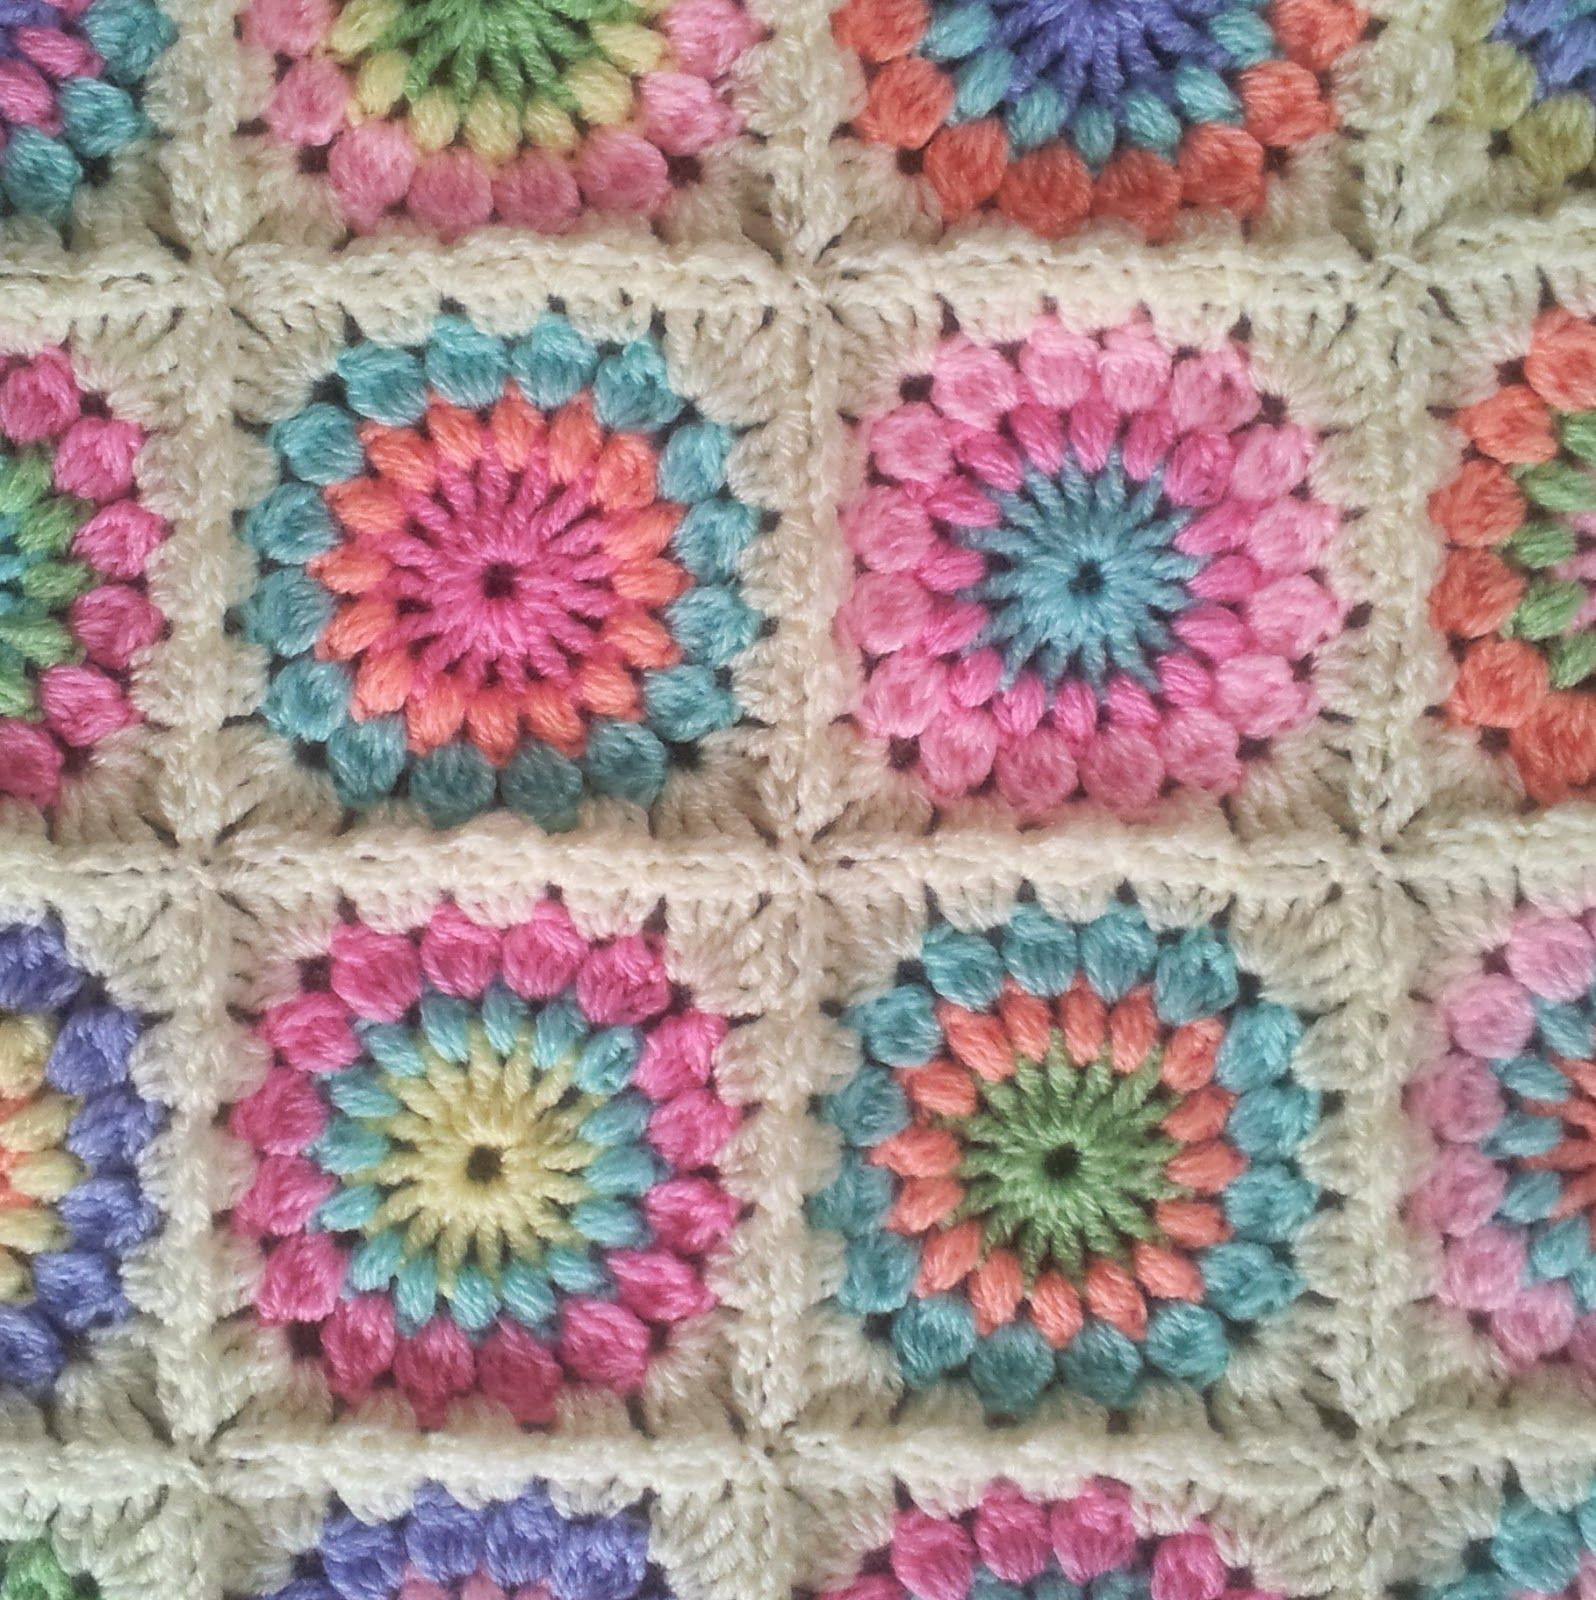 Granny Square Afghan Awesome the Patchwork Heart Starburst Crazy Granny Square Afghan Of Adorable 50 Pics Granny Square Afghan